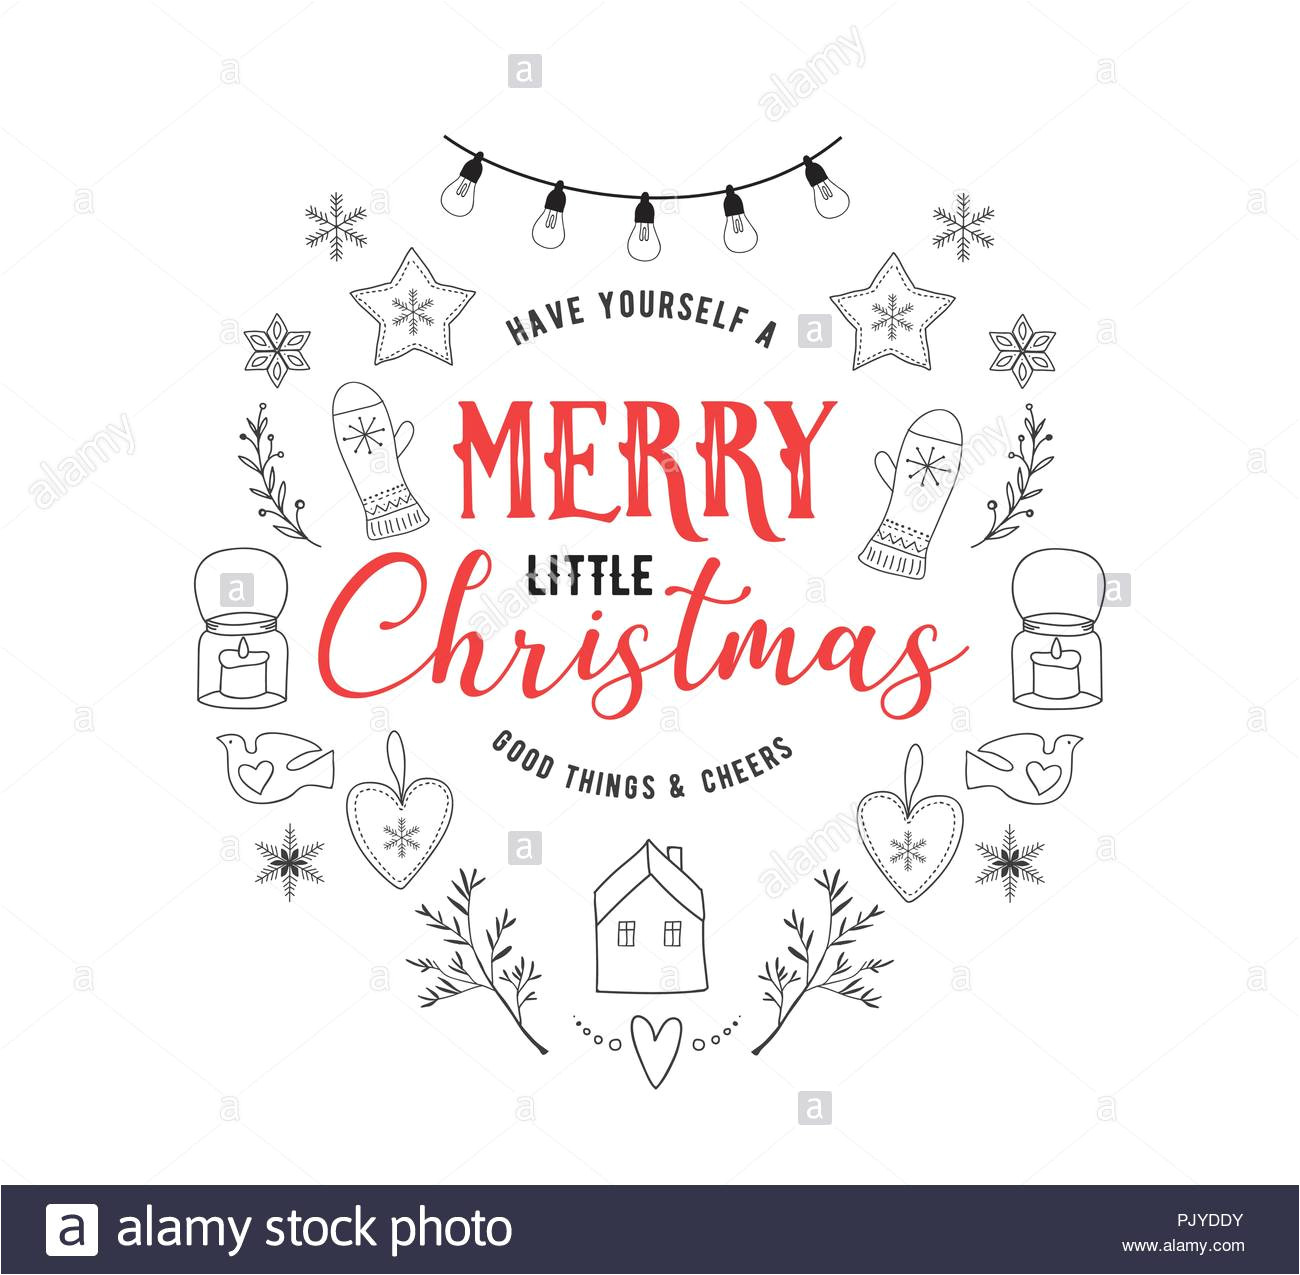 scandinavian style simple and stylish merry christmas greeting card with hand drawn elements quotes lettering pjyddy jpg